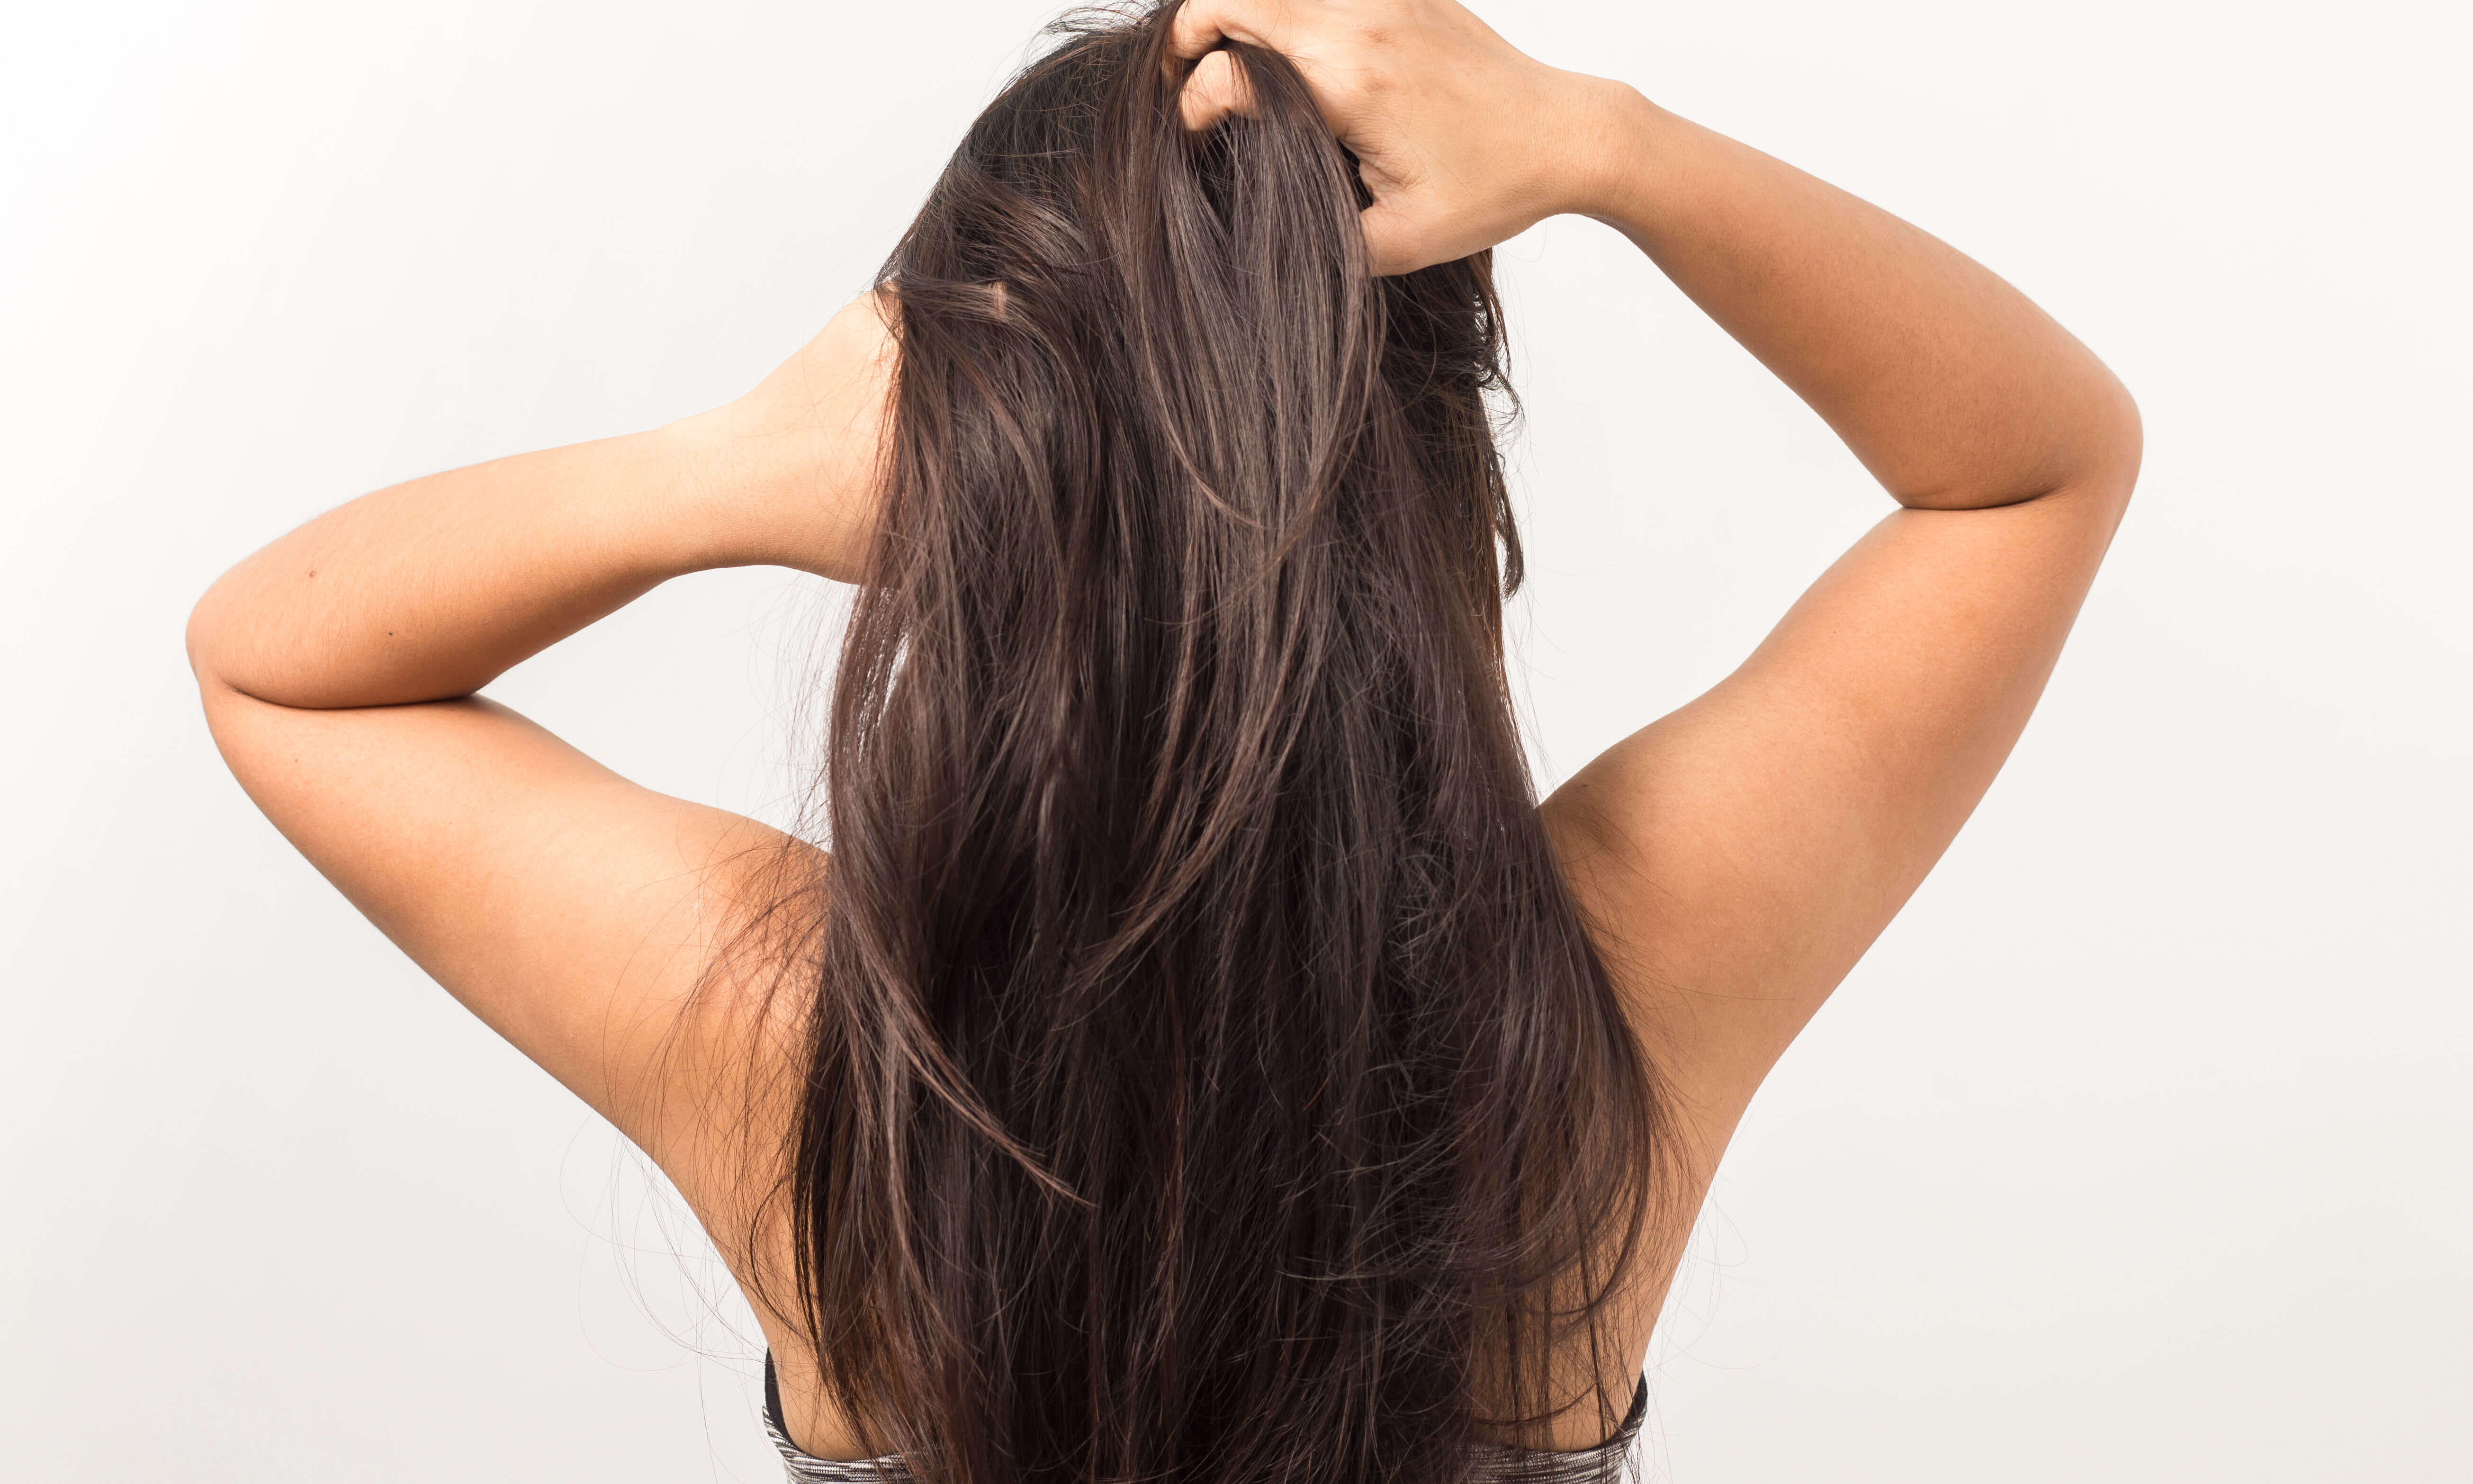 Healthy-Looking Hair and Scalp